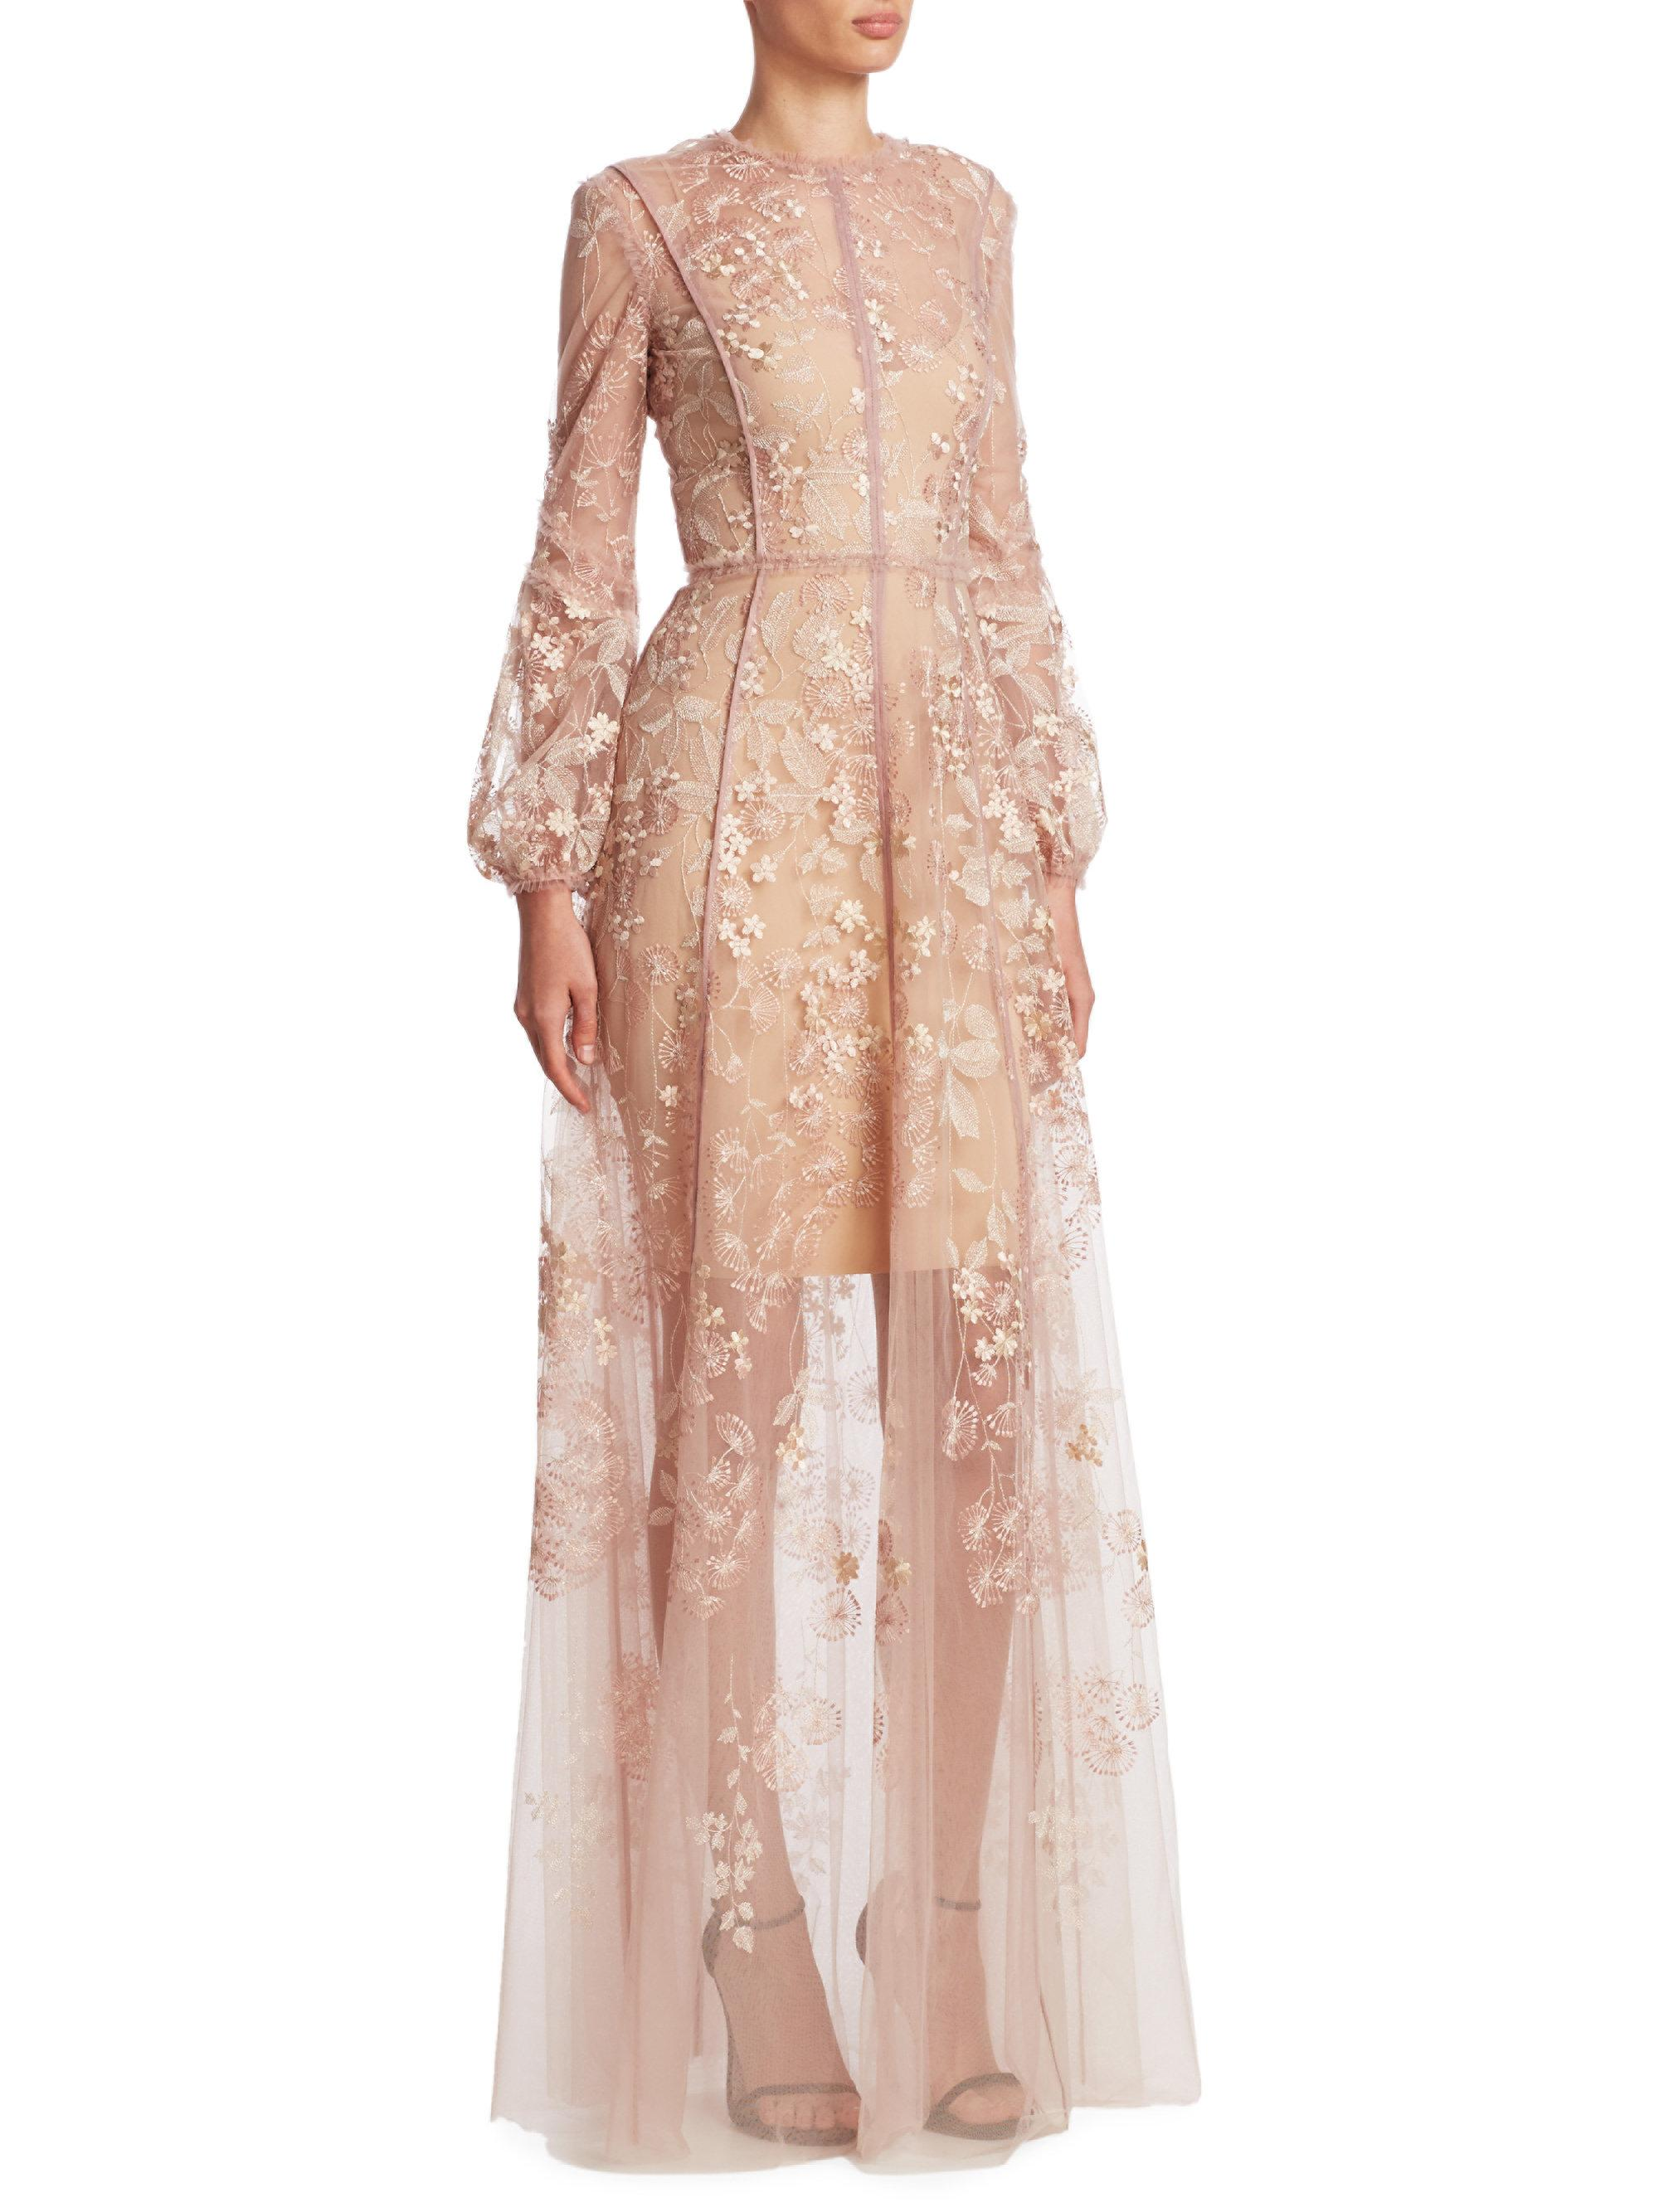 c05198ad8c J. Mendel Floral Embroidered Gown in Pink - Lyst